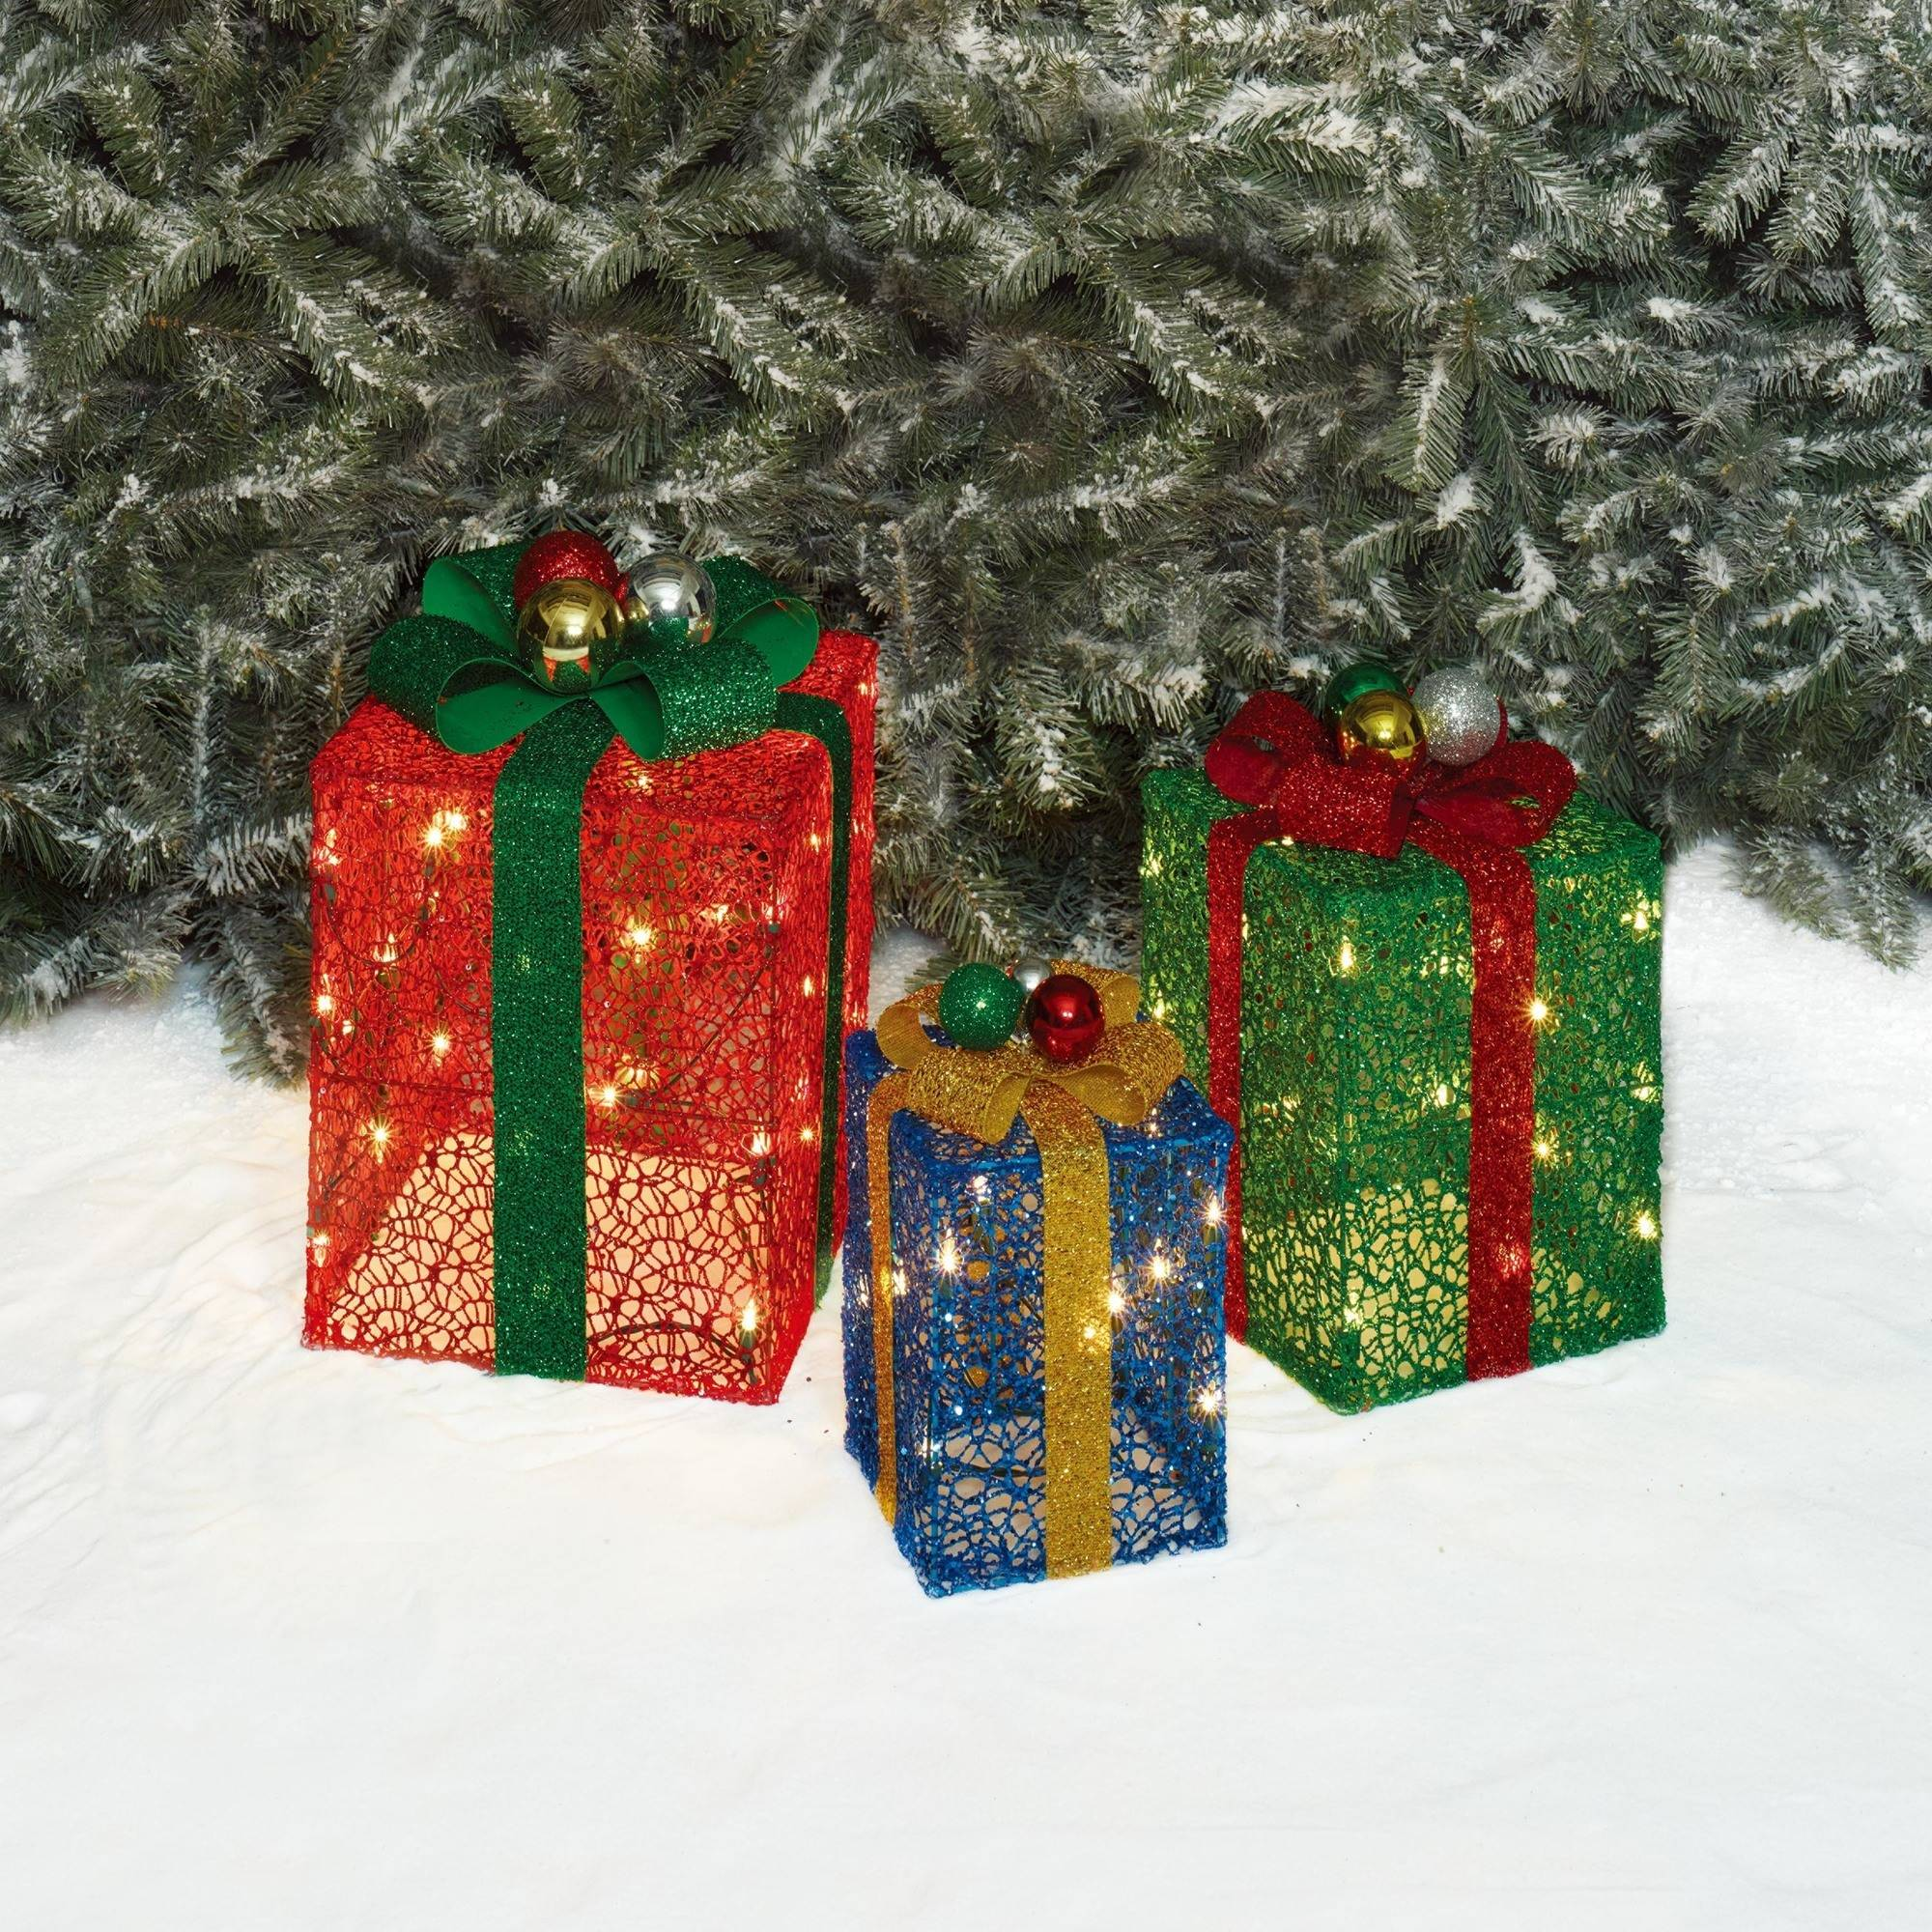 holiday time christmas decor set of 3 glittering mesh gift box sculpture walmartcom - Outdoor Christmas Decorations Gift Boxes